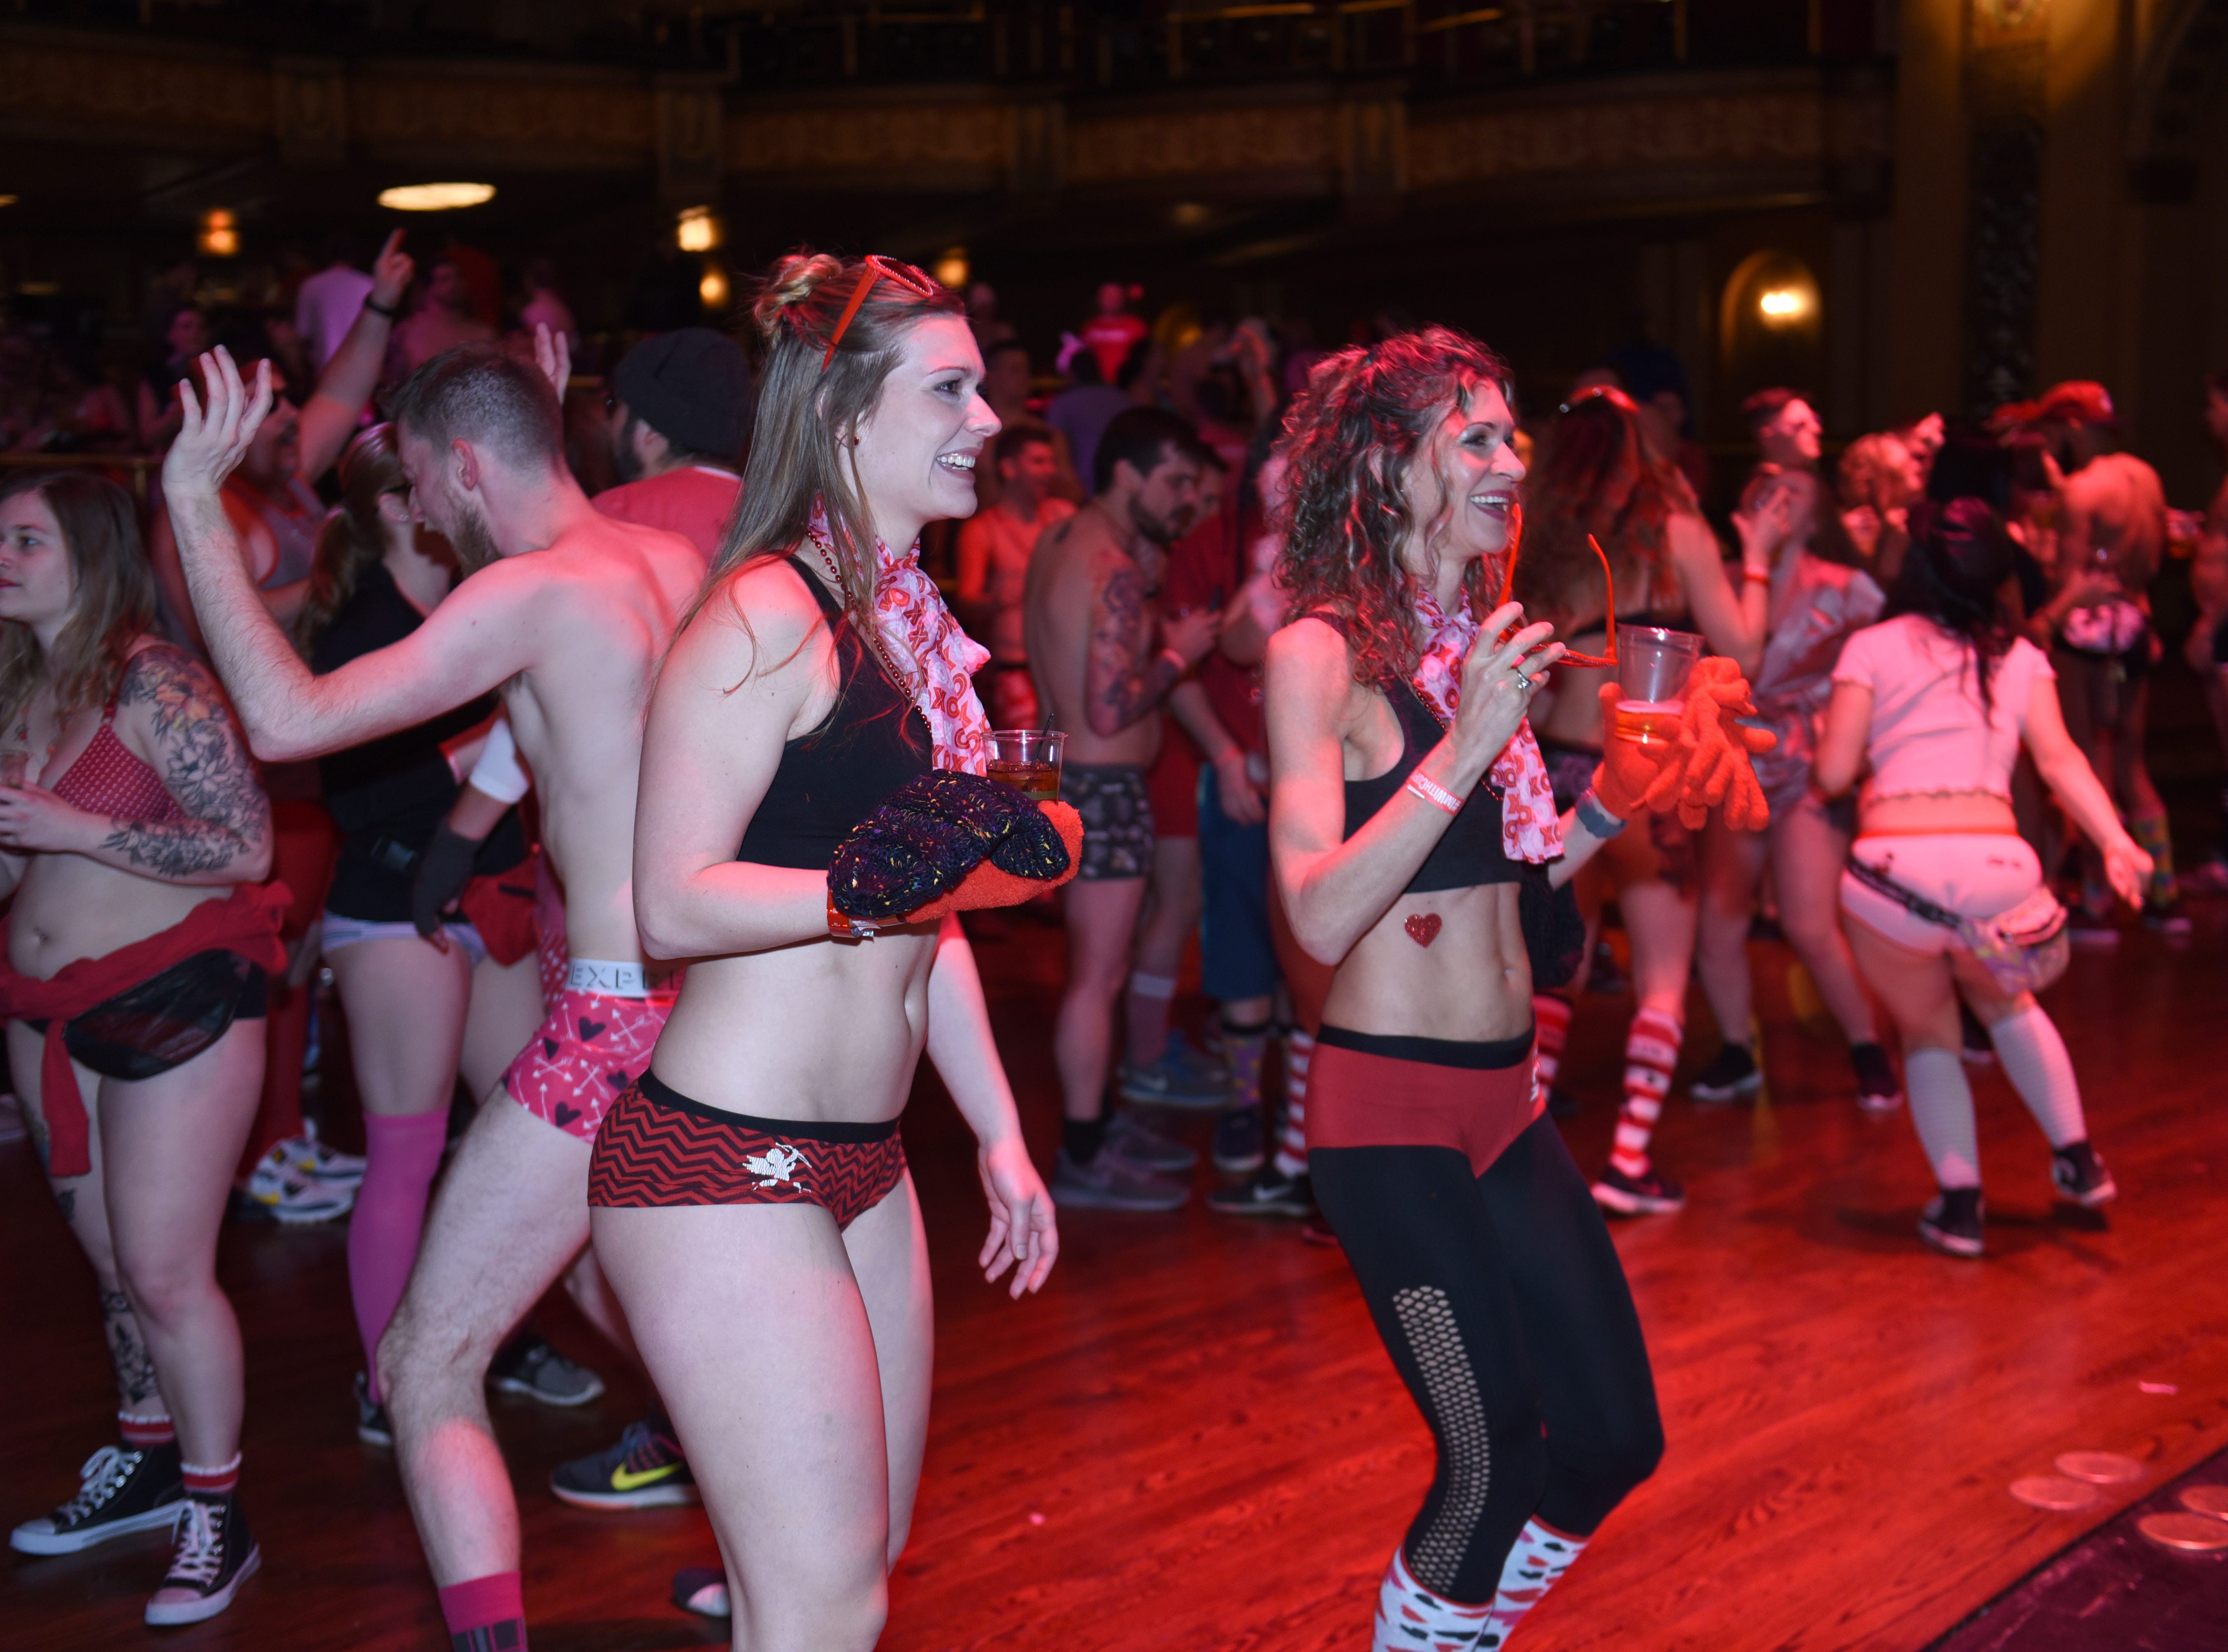 Participants party at The Fillmore Detroit for Cupid's Undie Run on Saturday, February 9, 2019.